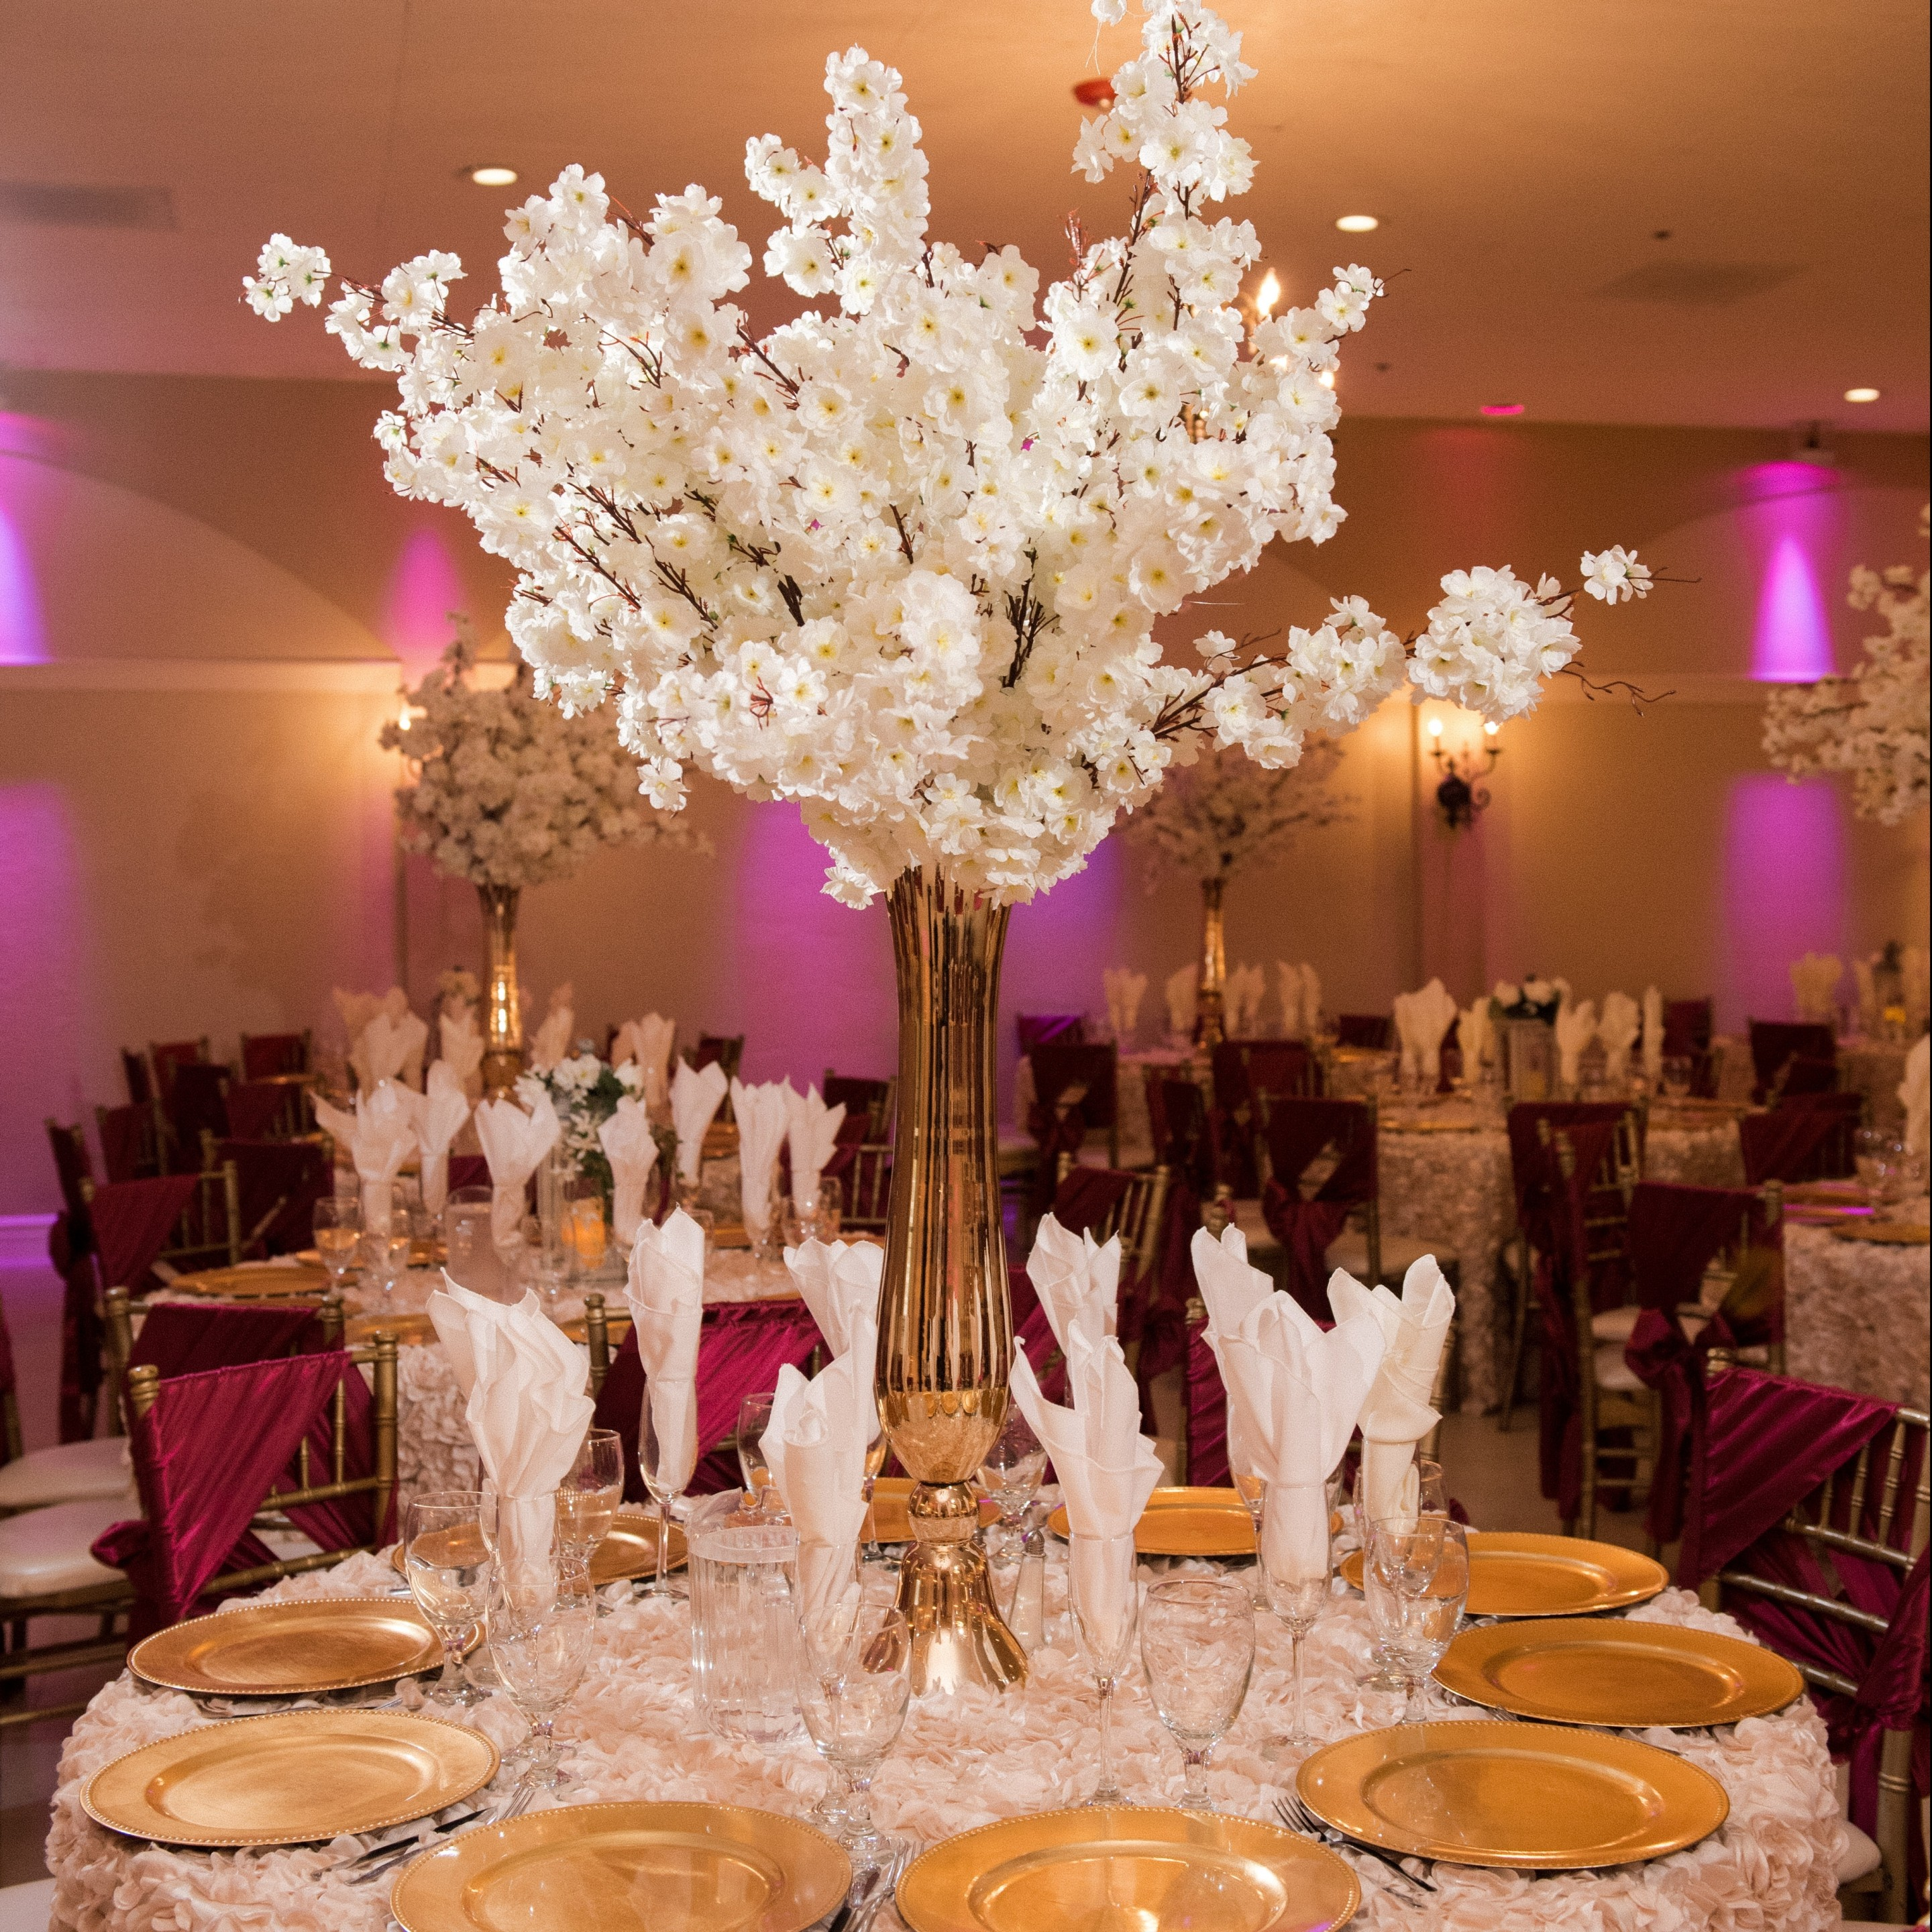 Villa Tuscana Reception Hall event showing large white floral centerpiece table decoration